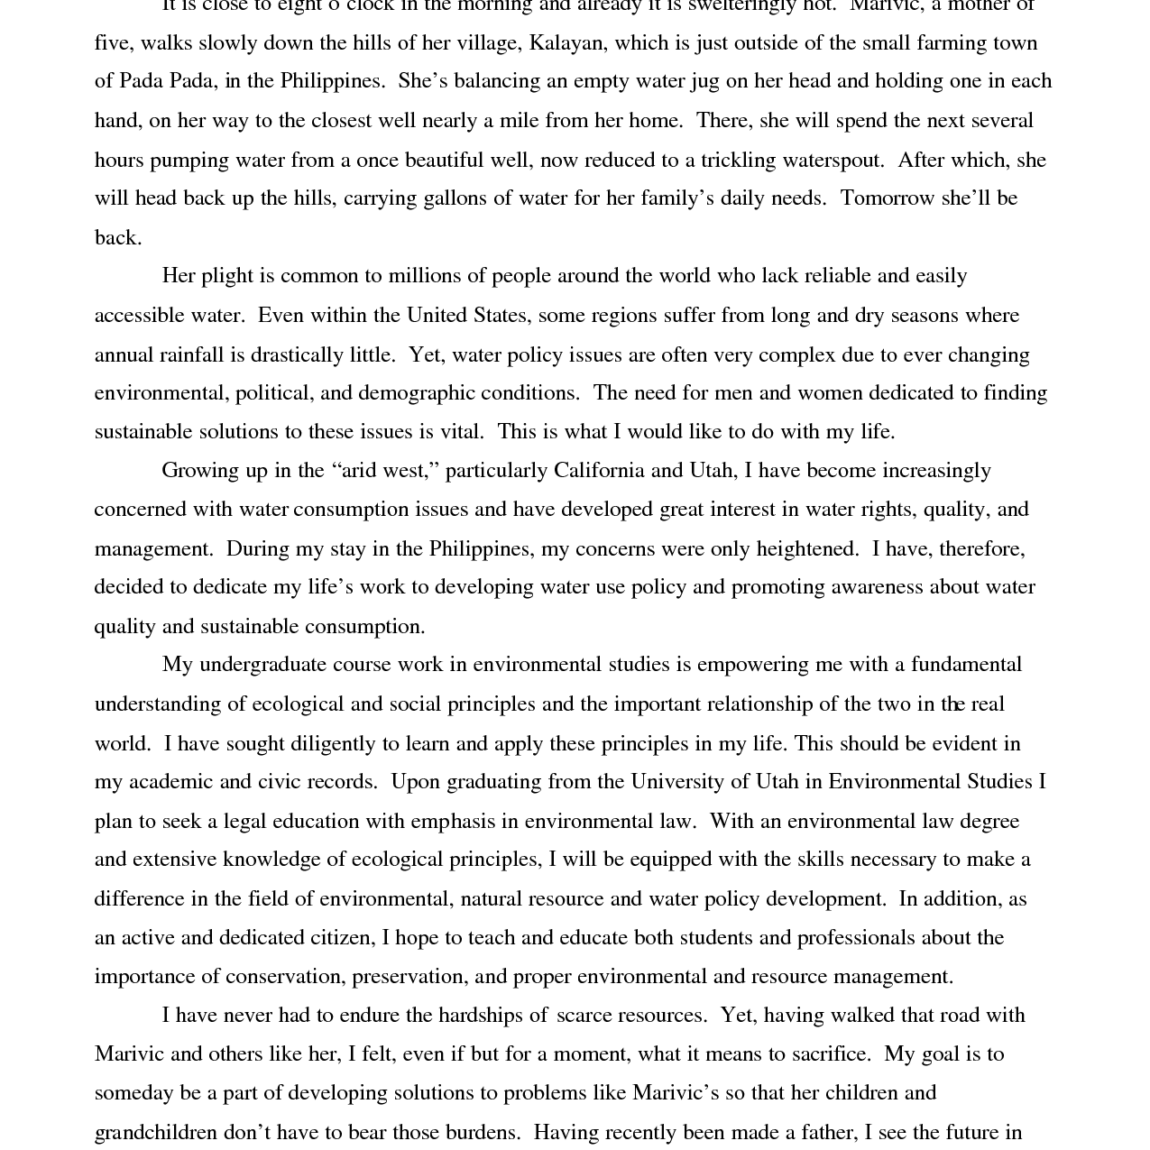 014 Essay Example My Self Application Letter Vikingsna Org Within All About Me College Undergraduate Examples Good At For How To Write An Impressive High School Full